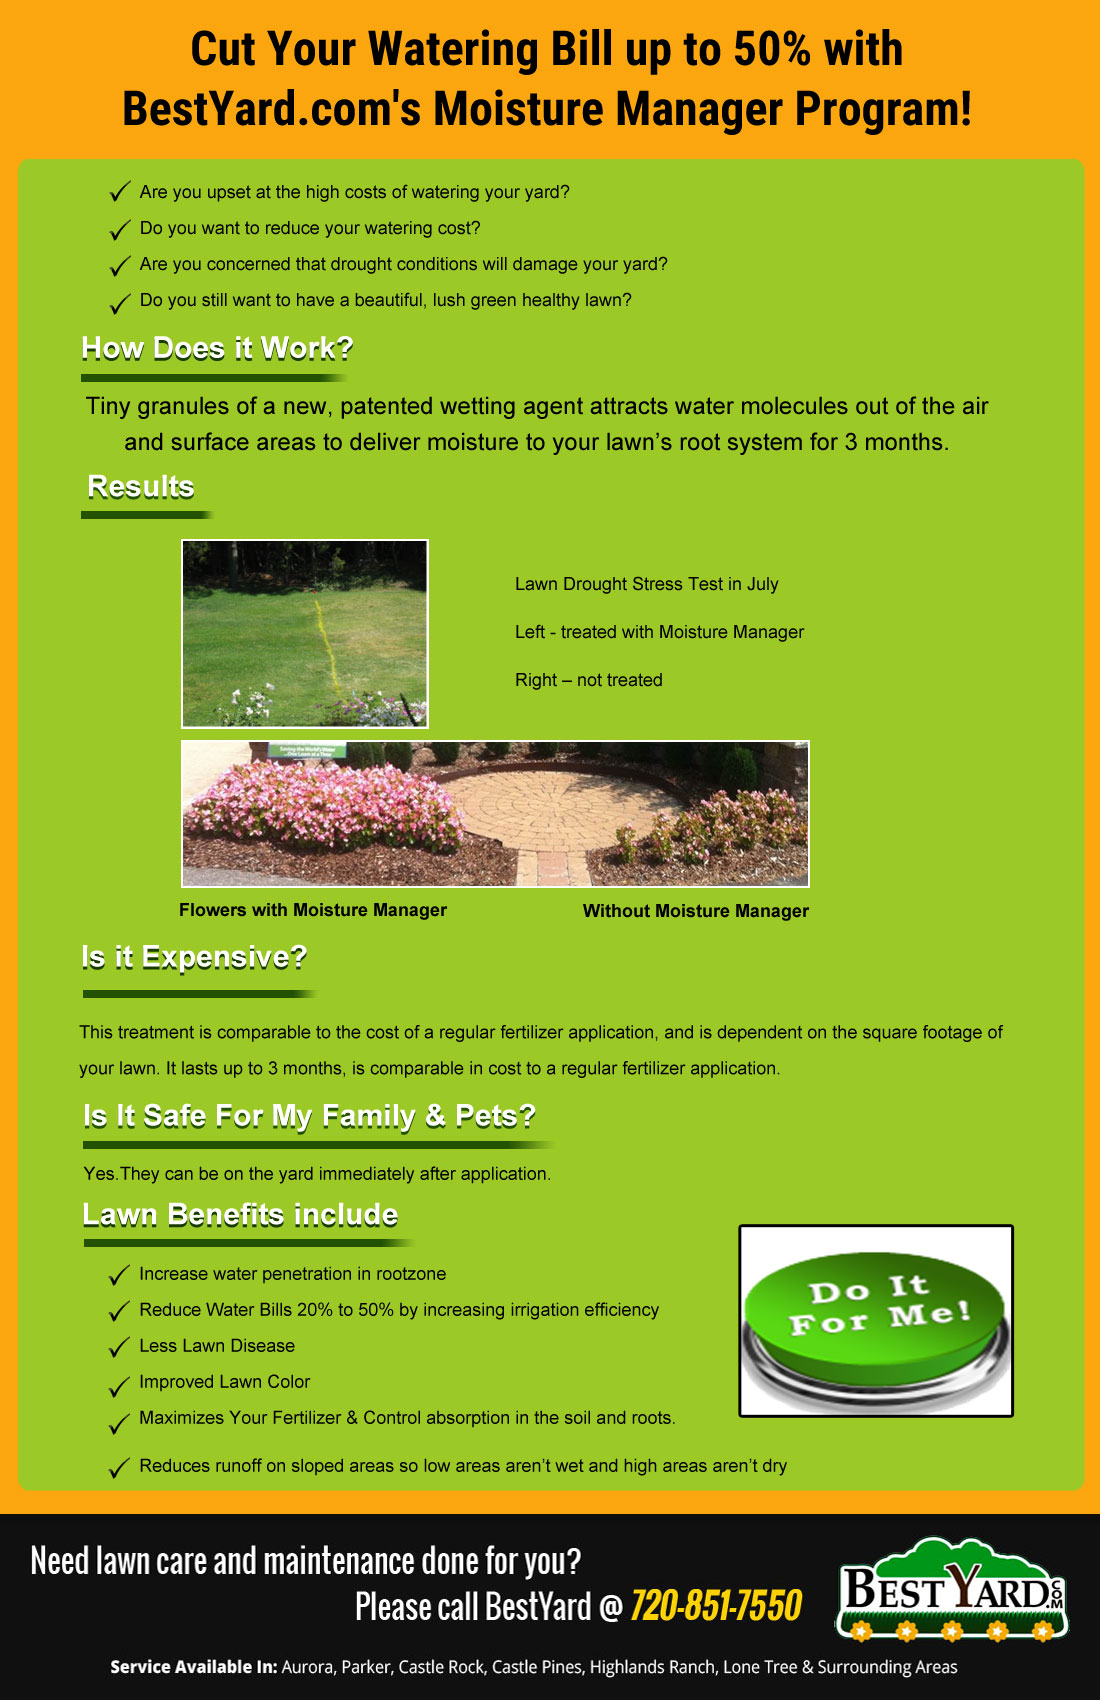 Moisture Manager Program : Cut Your Watering Bill up to 50%